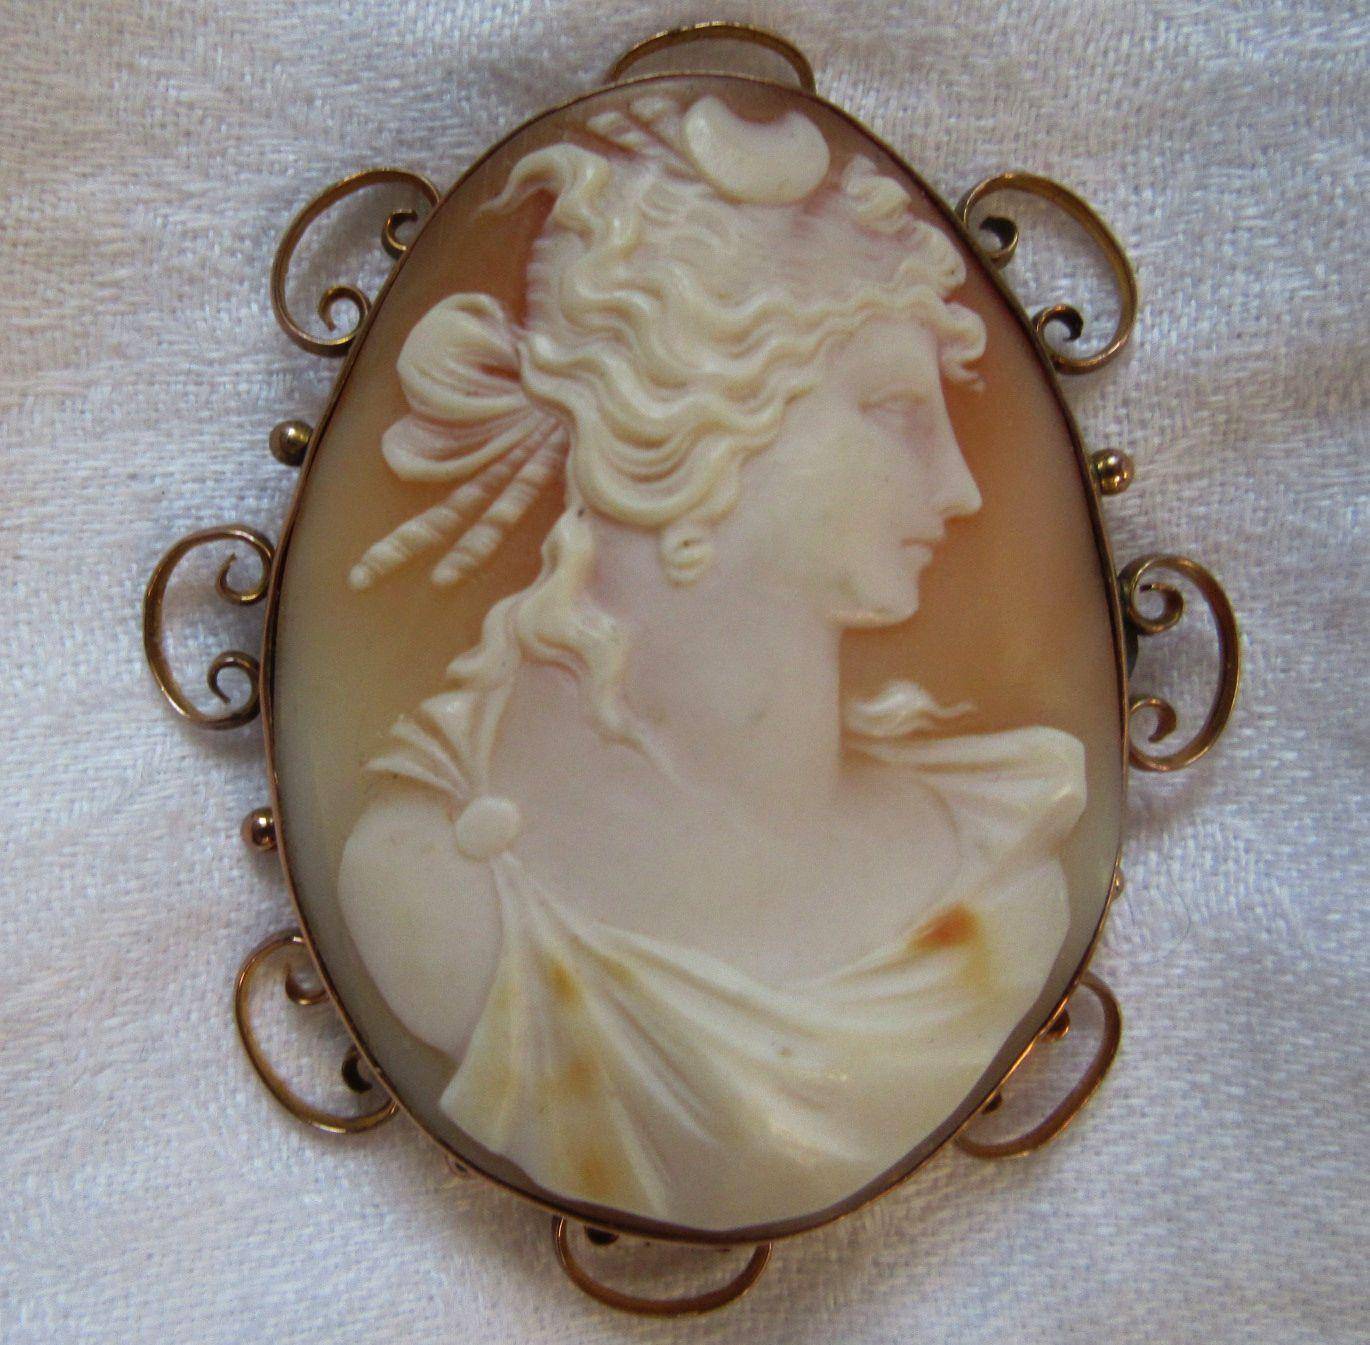 Huge Carved Shell Cameo Brooch 9K Gold Victorian Jewelry